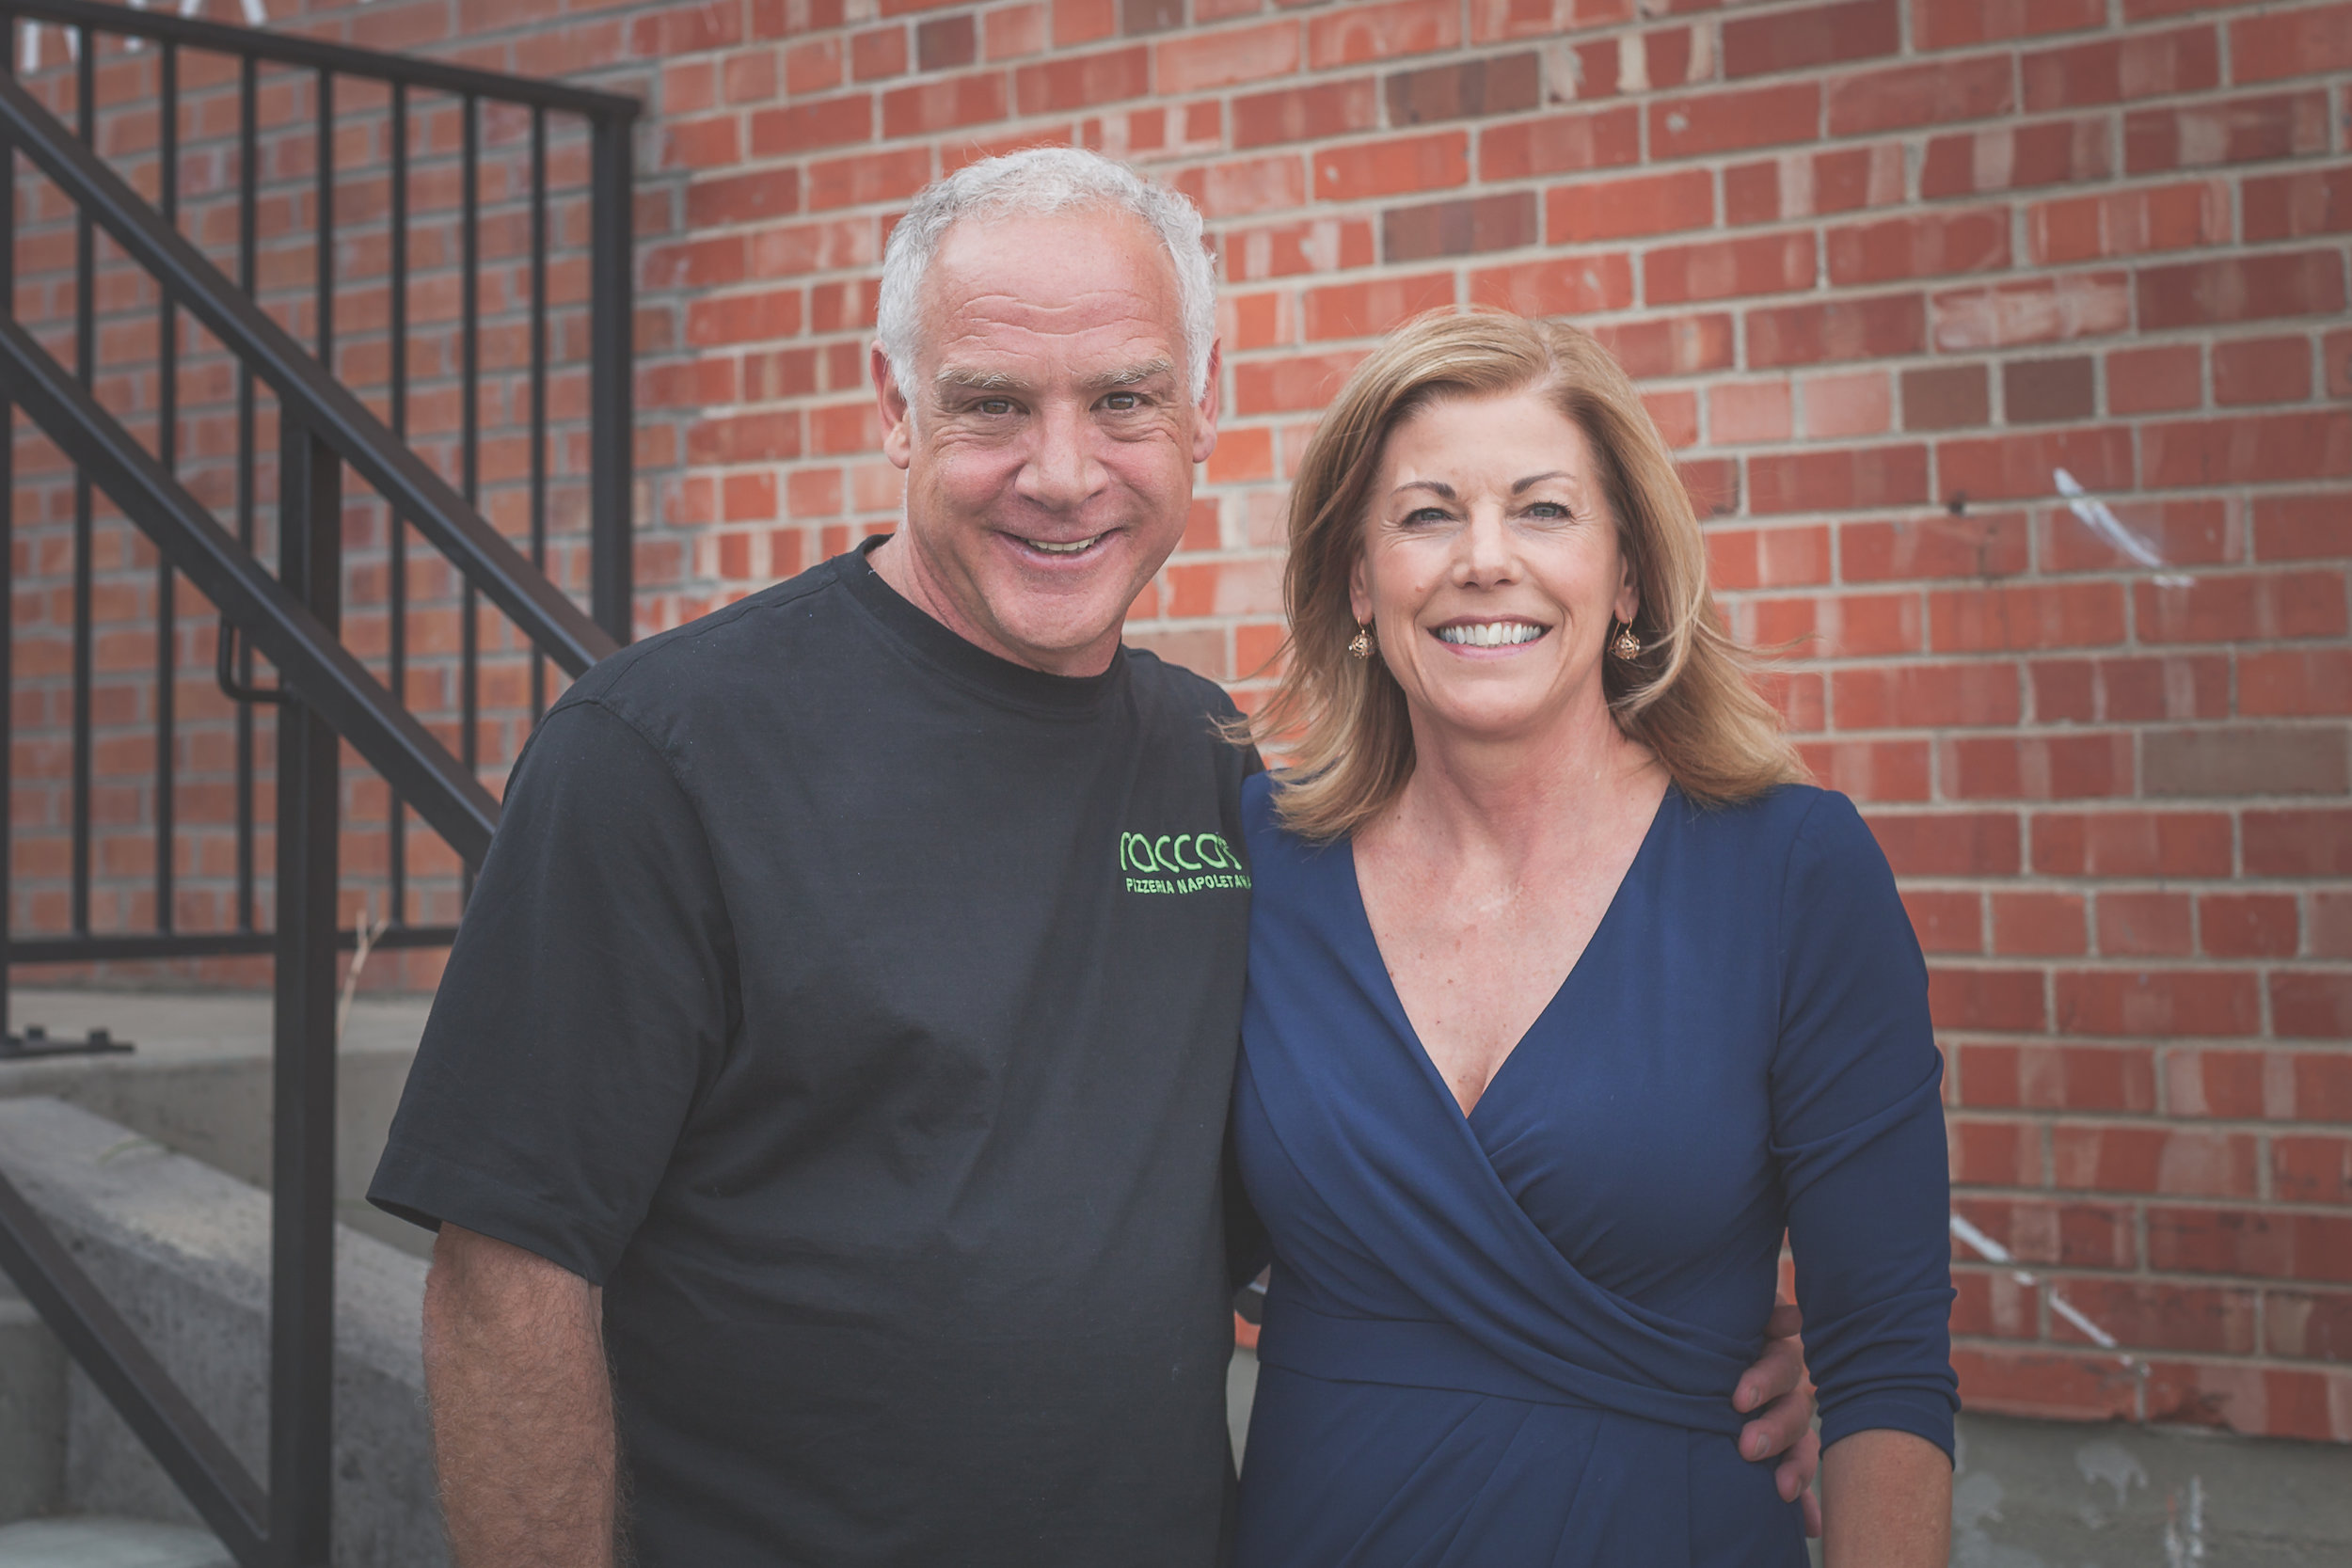 Owners, Mark and Kristy Dym